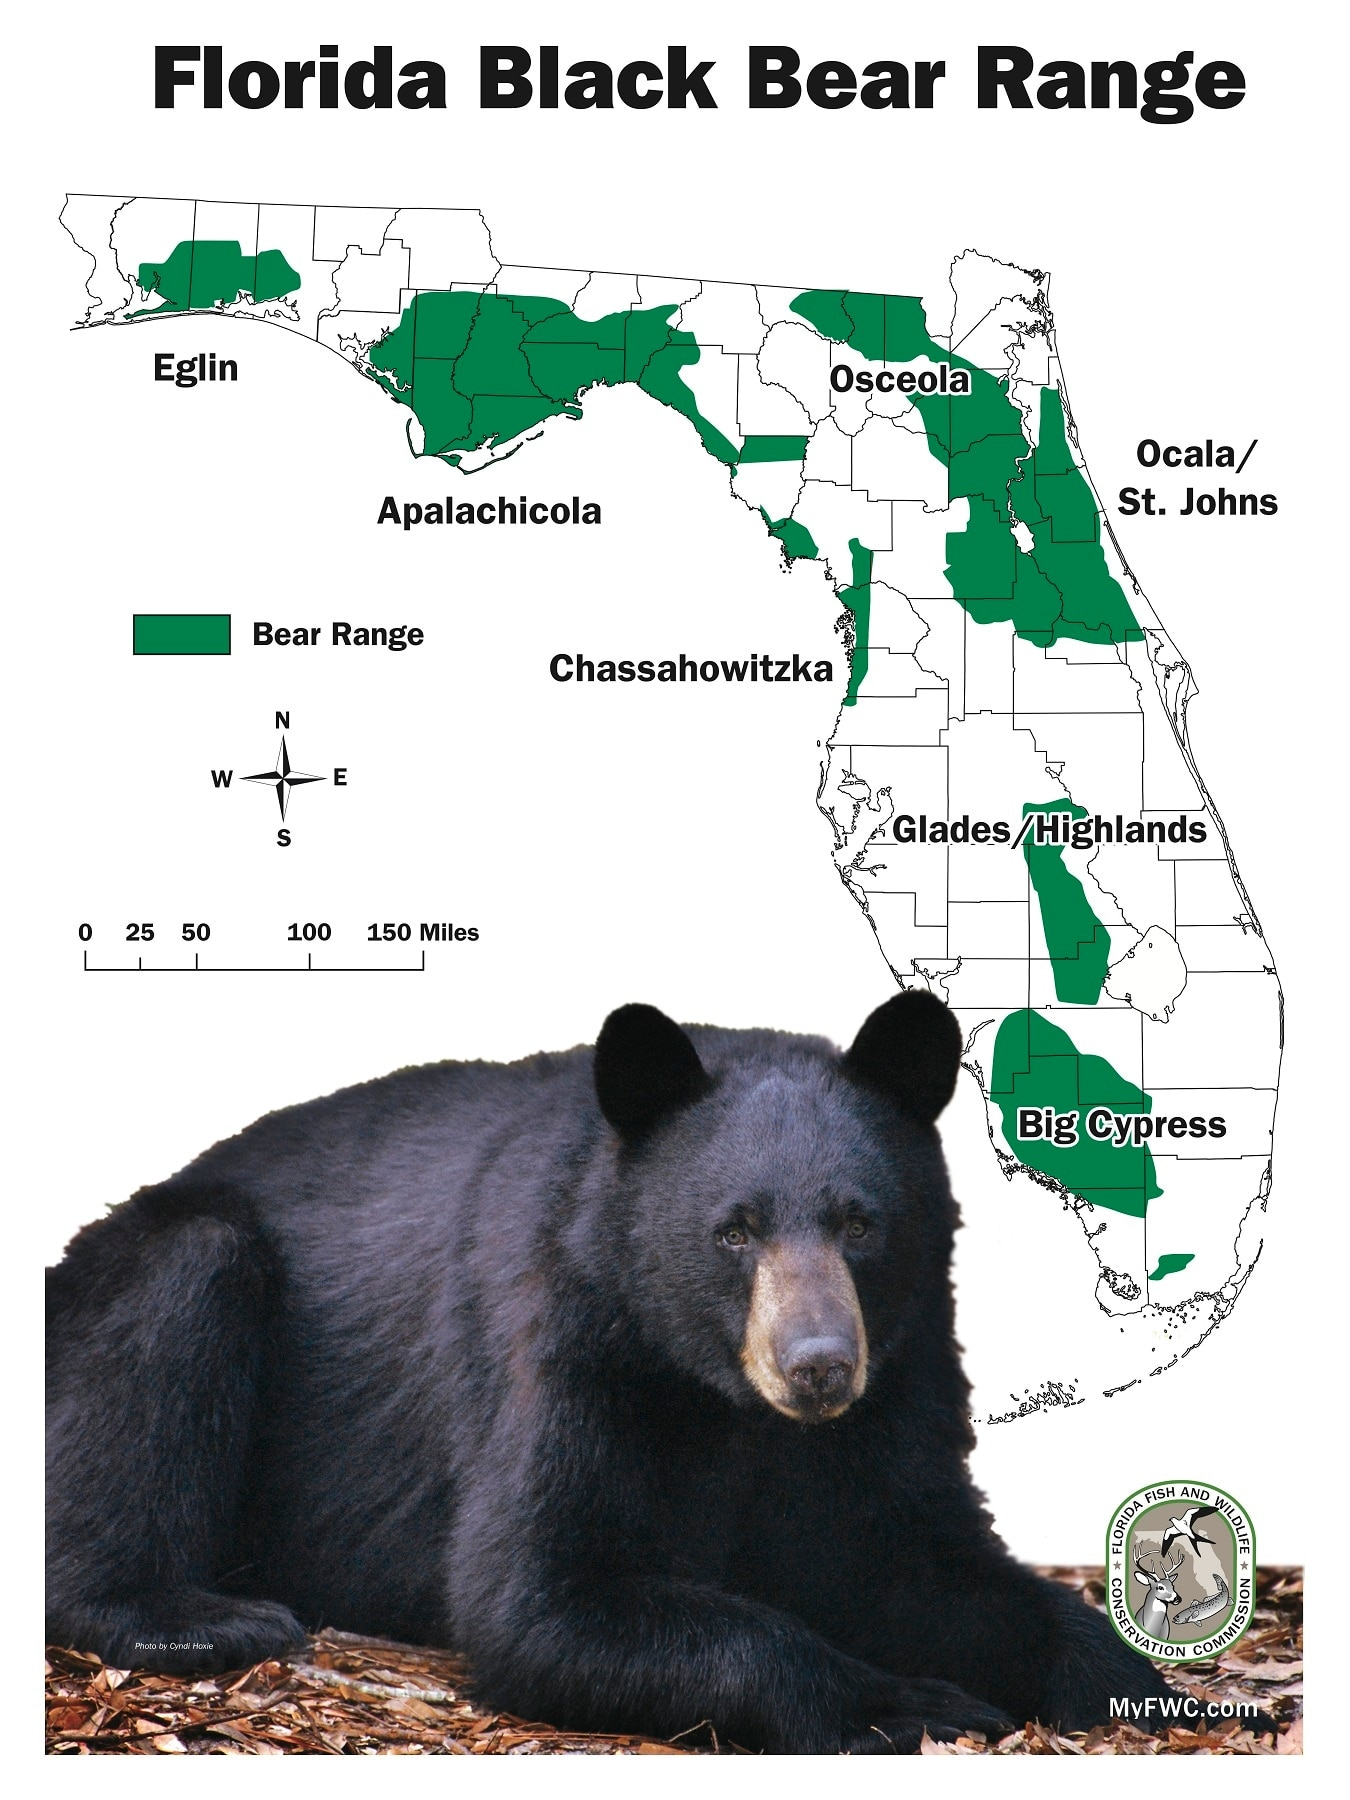 The Florida Wildlife Commission estimates that over 3,000 black bears are now roaming the state, leaving the prospect of an open season for the first time this century a valid prospect. (Photo: FWC)